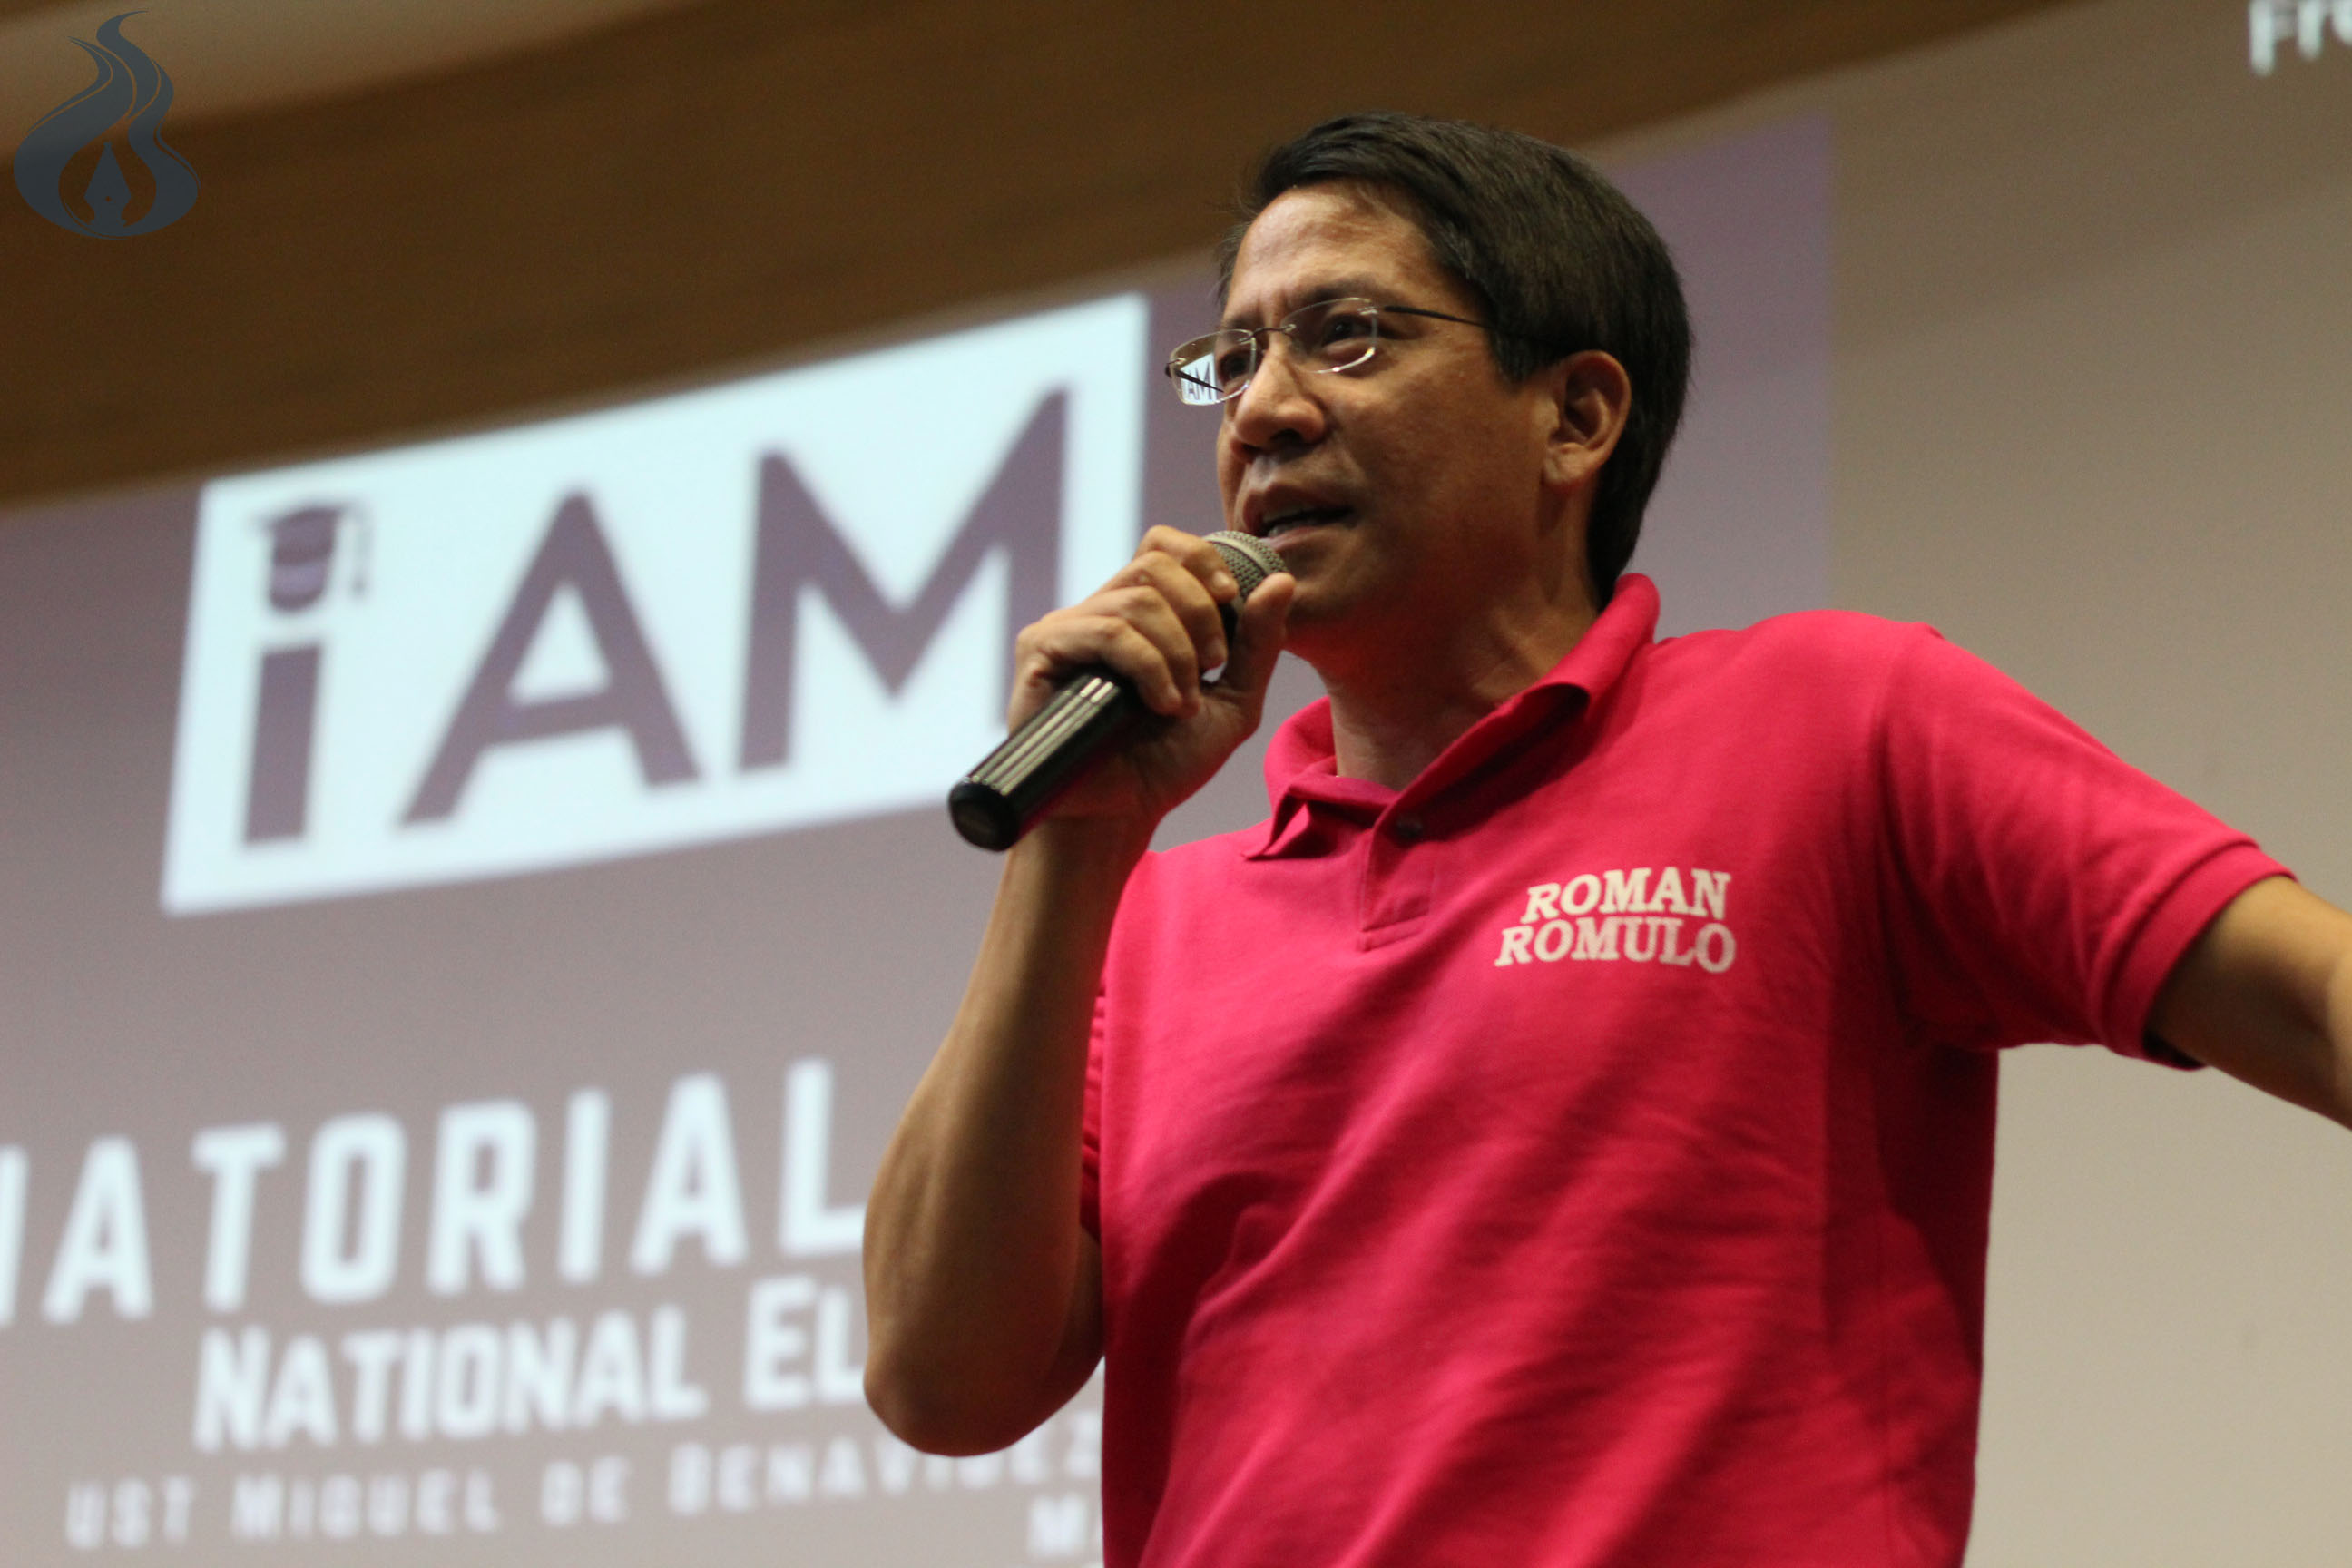 Senatorial bets Ople, Romulo seek to improve education in PH